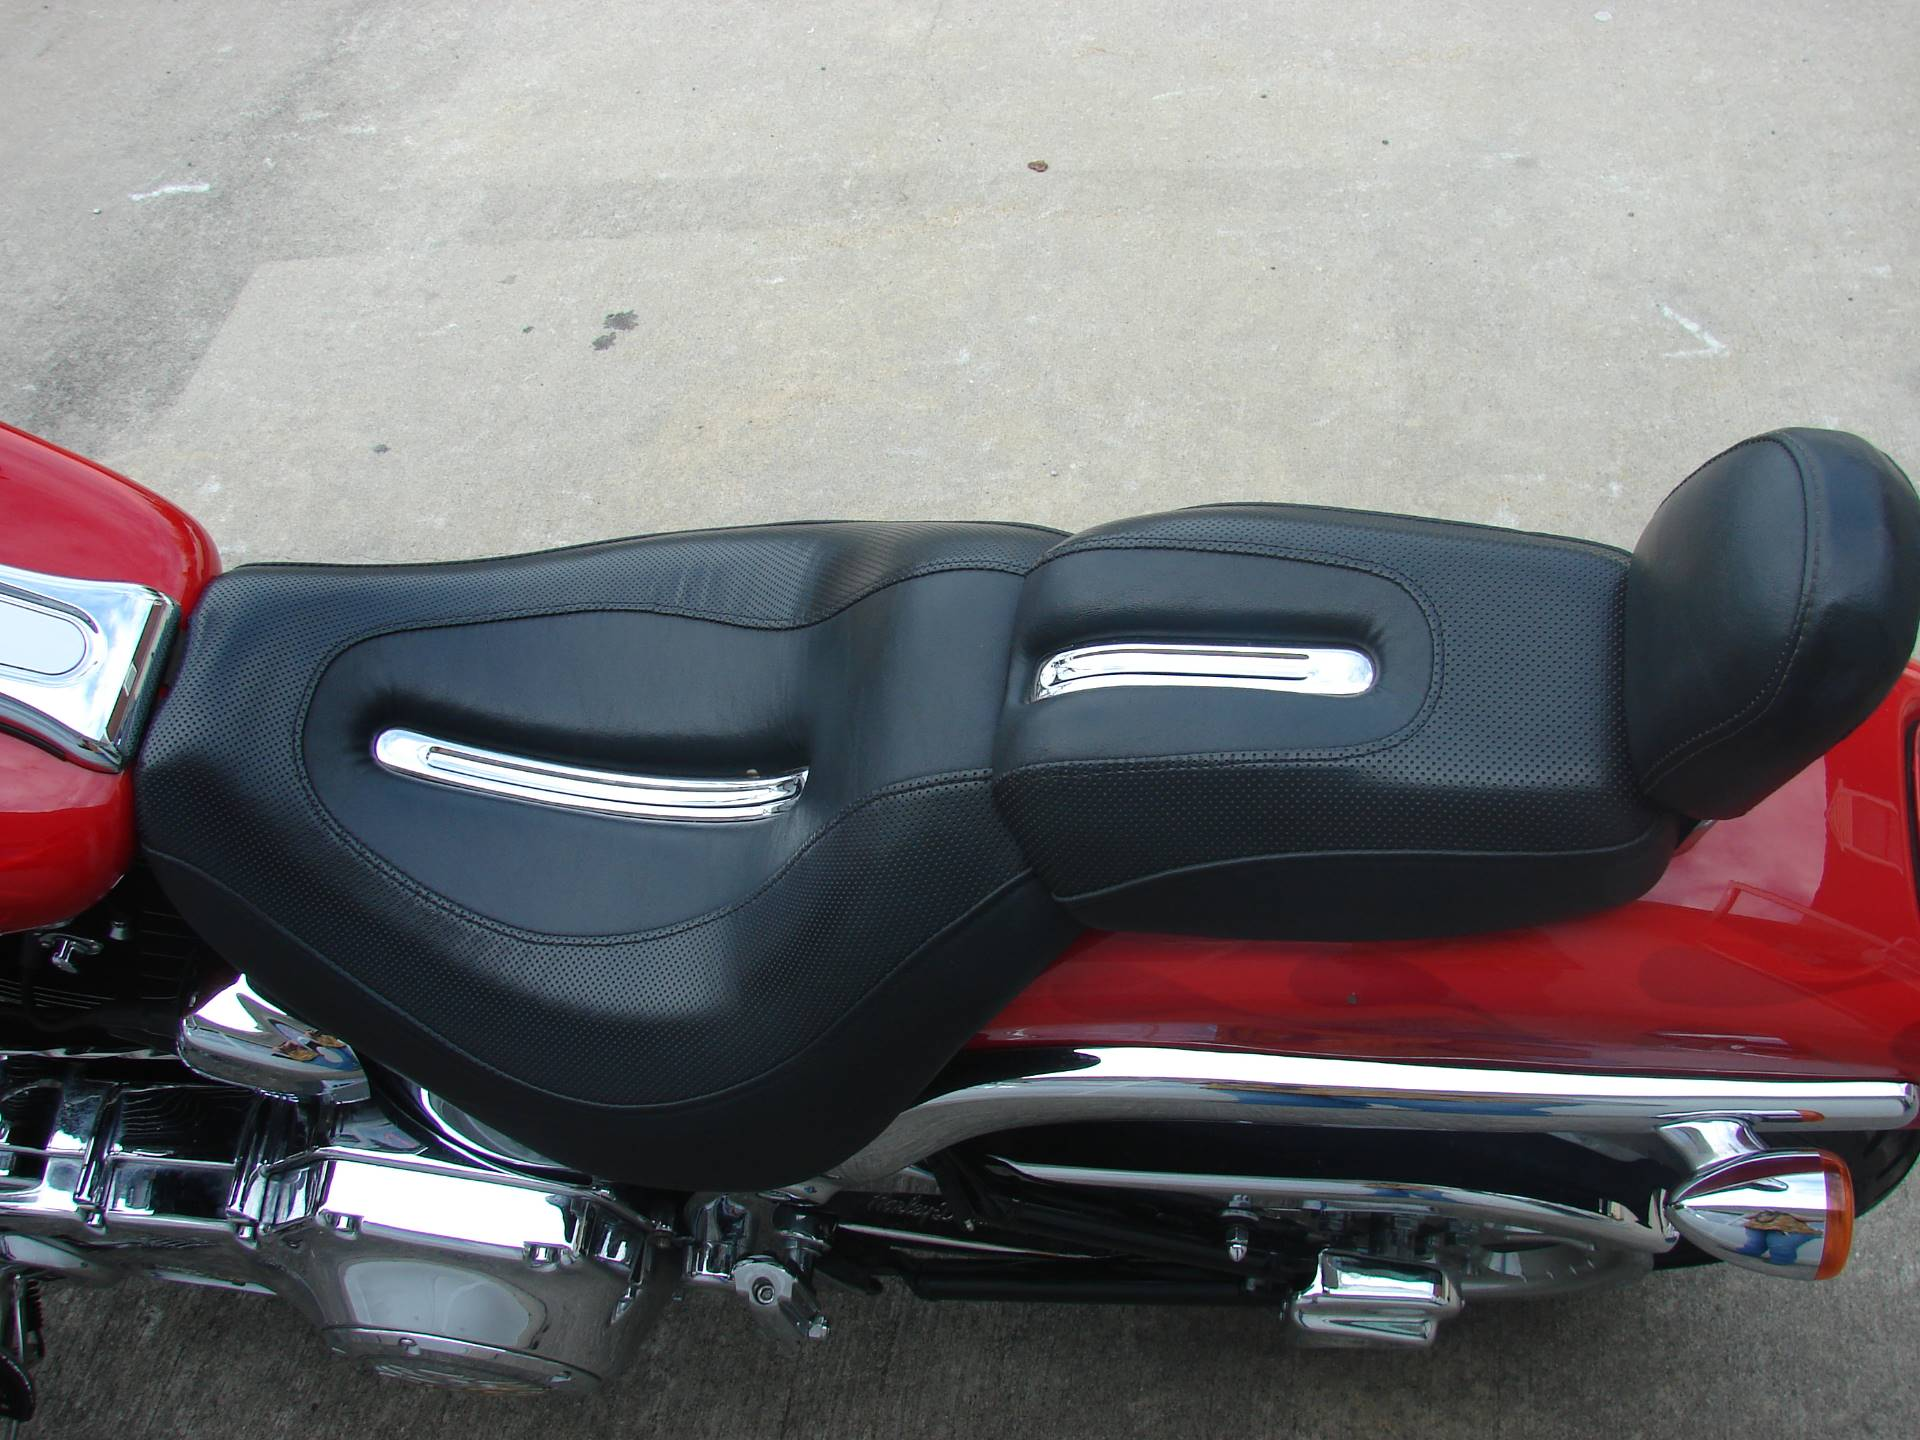 2005 Harley-Davidson FXSTD in Williamstown, New Jersey